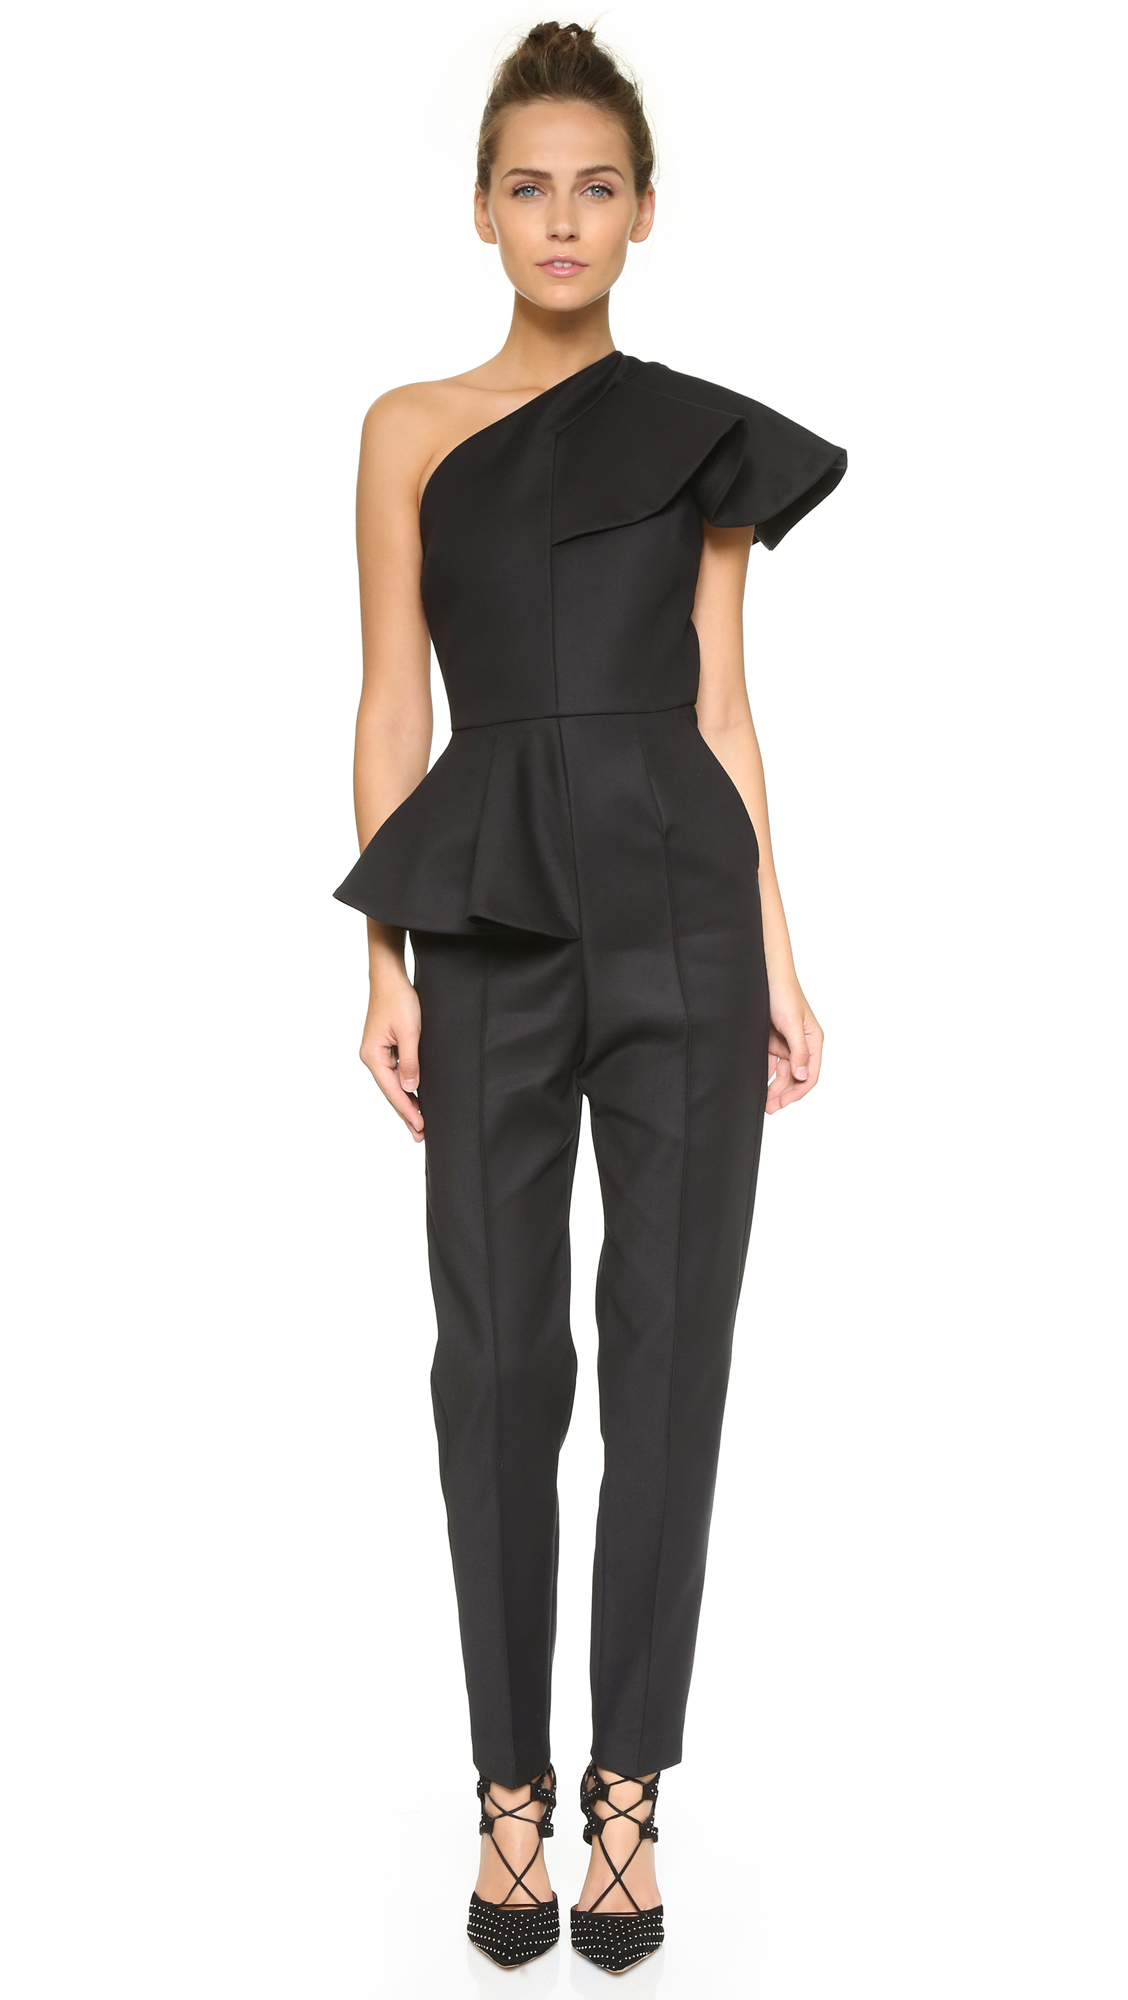 Msgm Ruffle One Shoulder Jumpsuit - Black in Black | Lyst